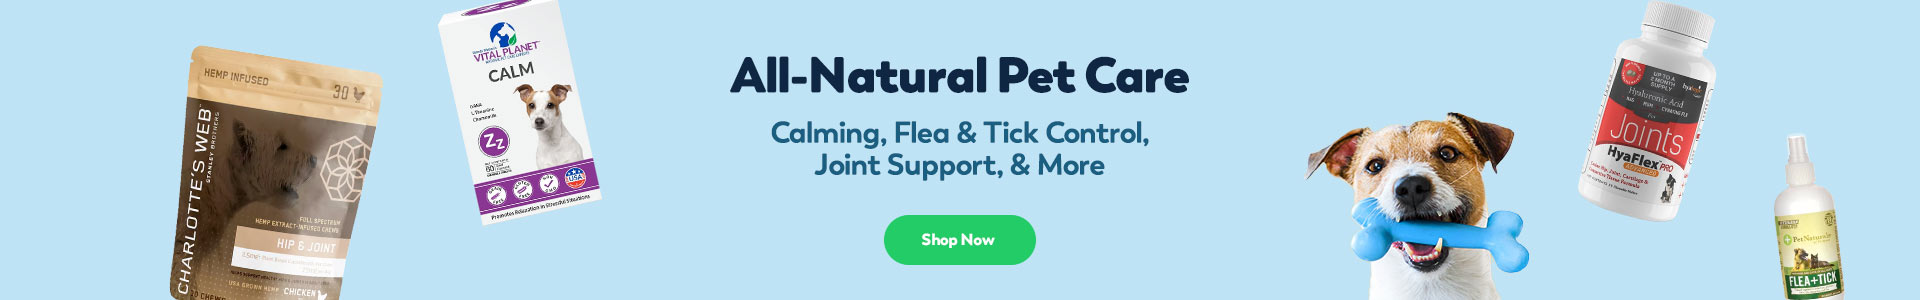 All-Natural Pet Care